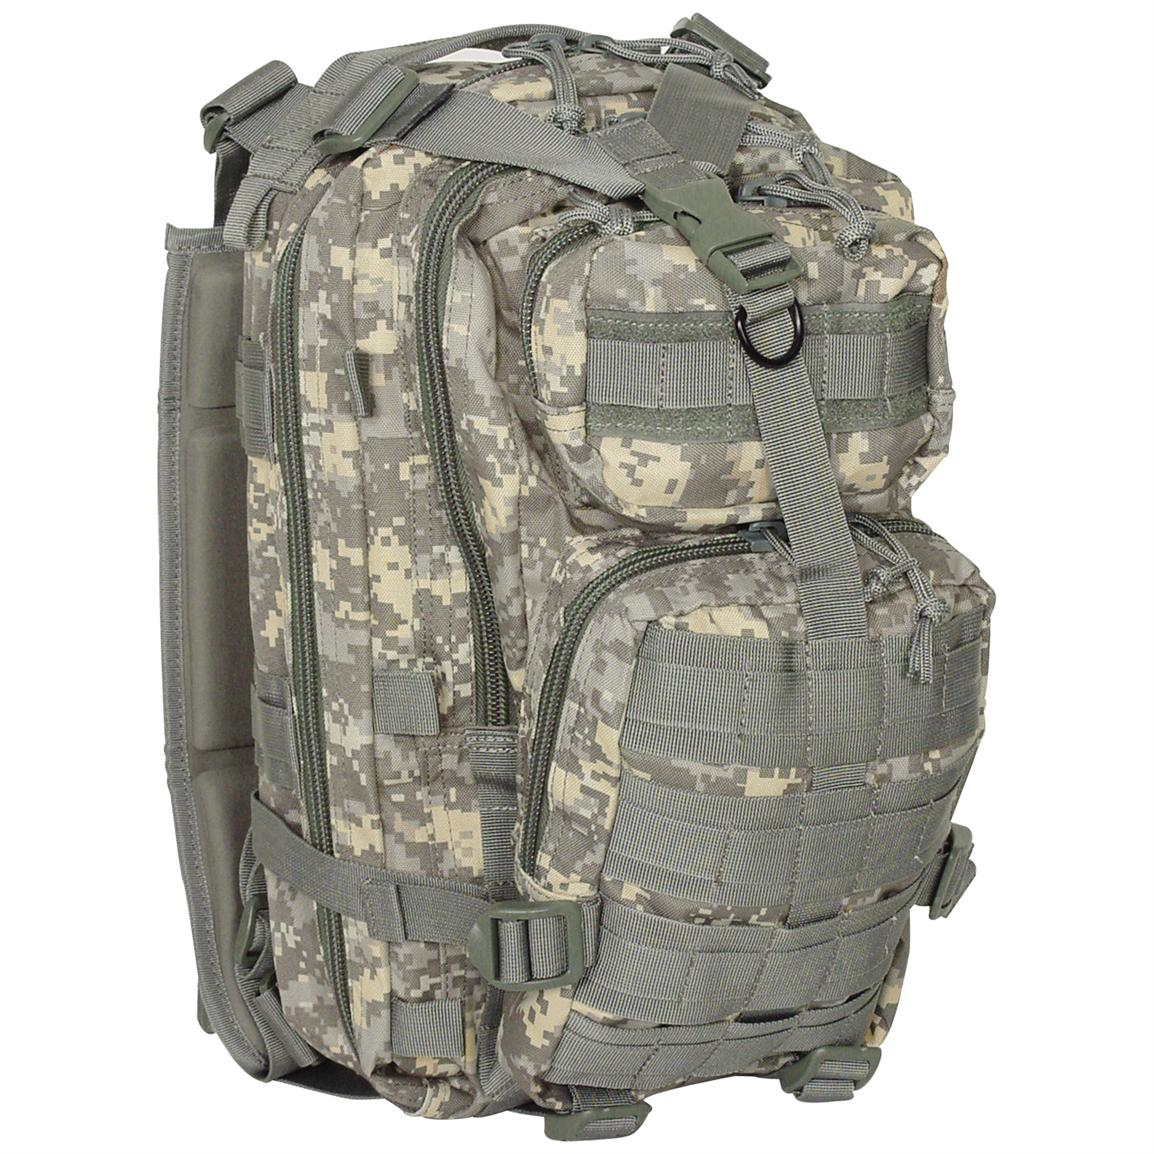 Level III Assault Pack, Army Digital